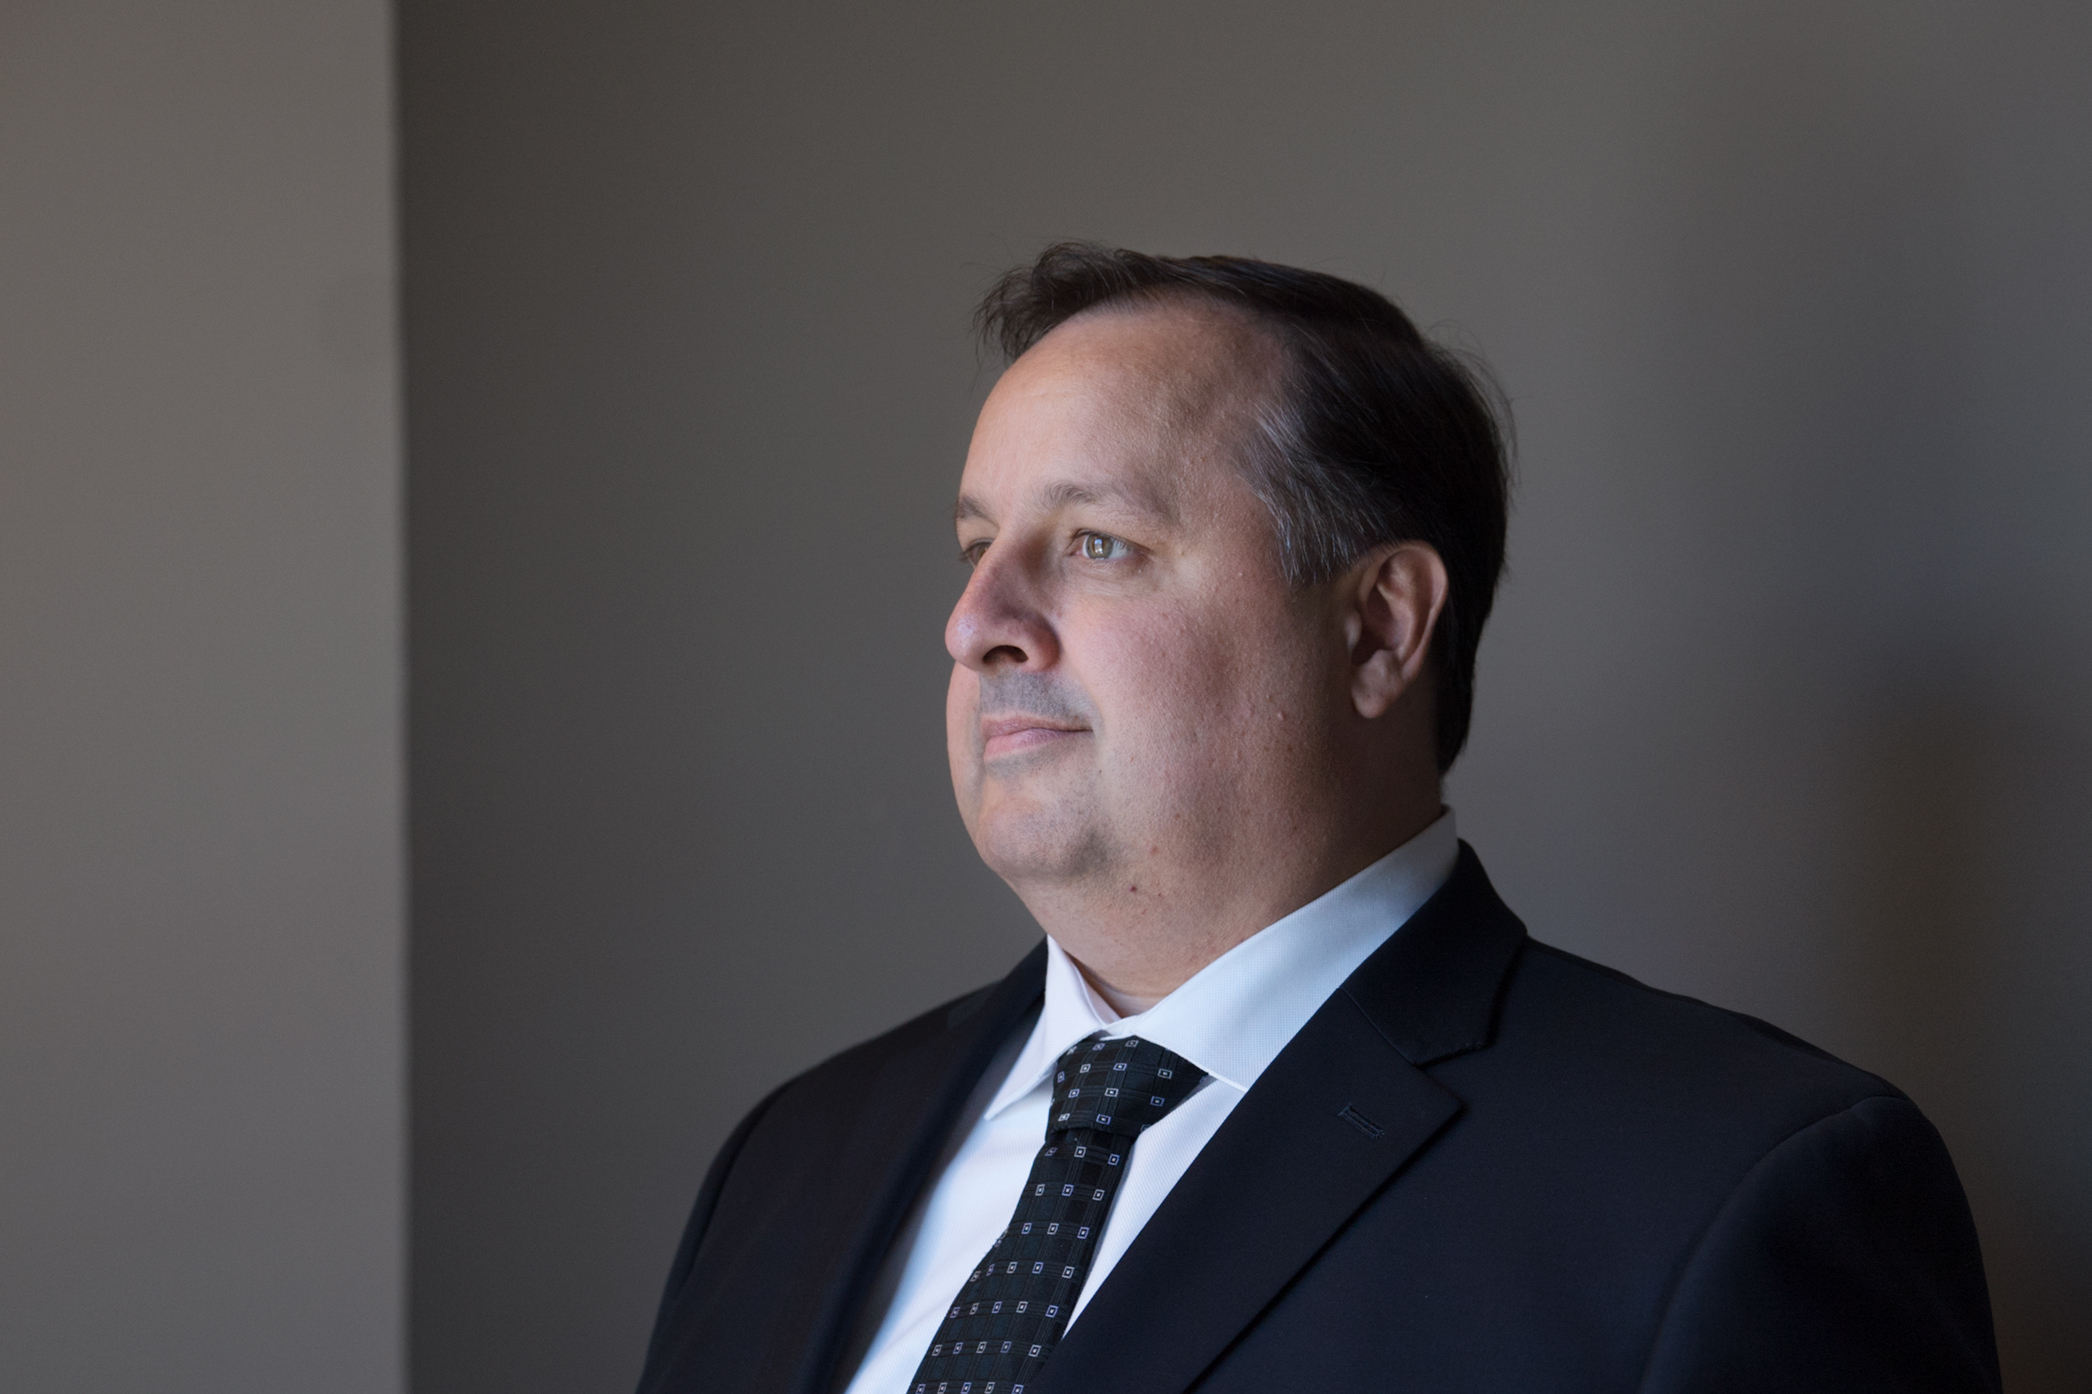 USA ethics watchdog chief Walter Shaub steps down, calls for 'improvements'